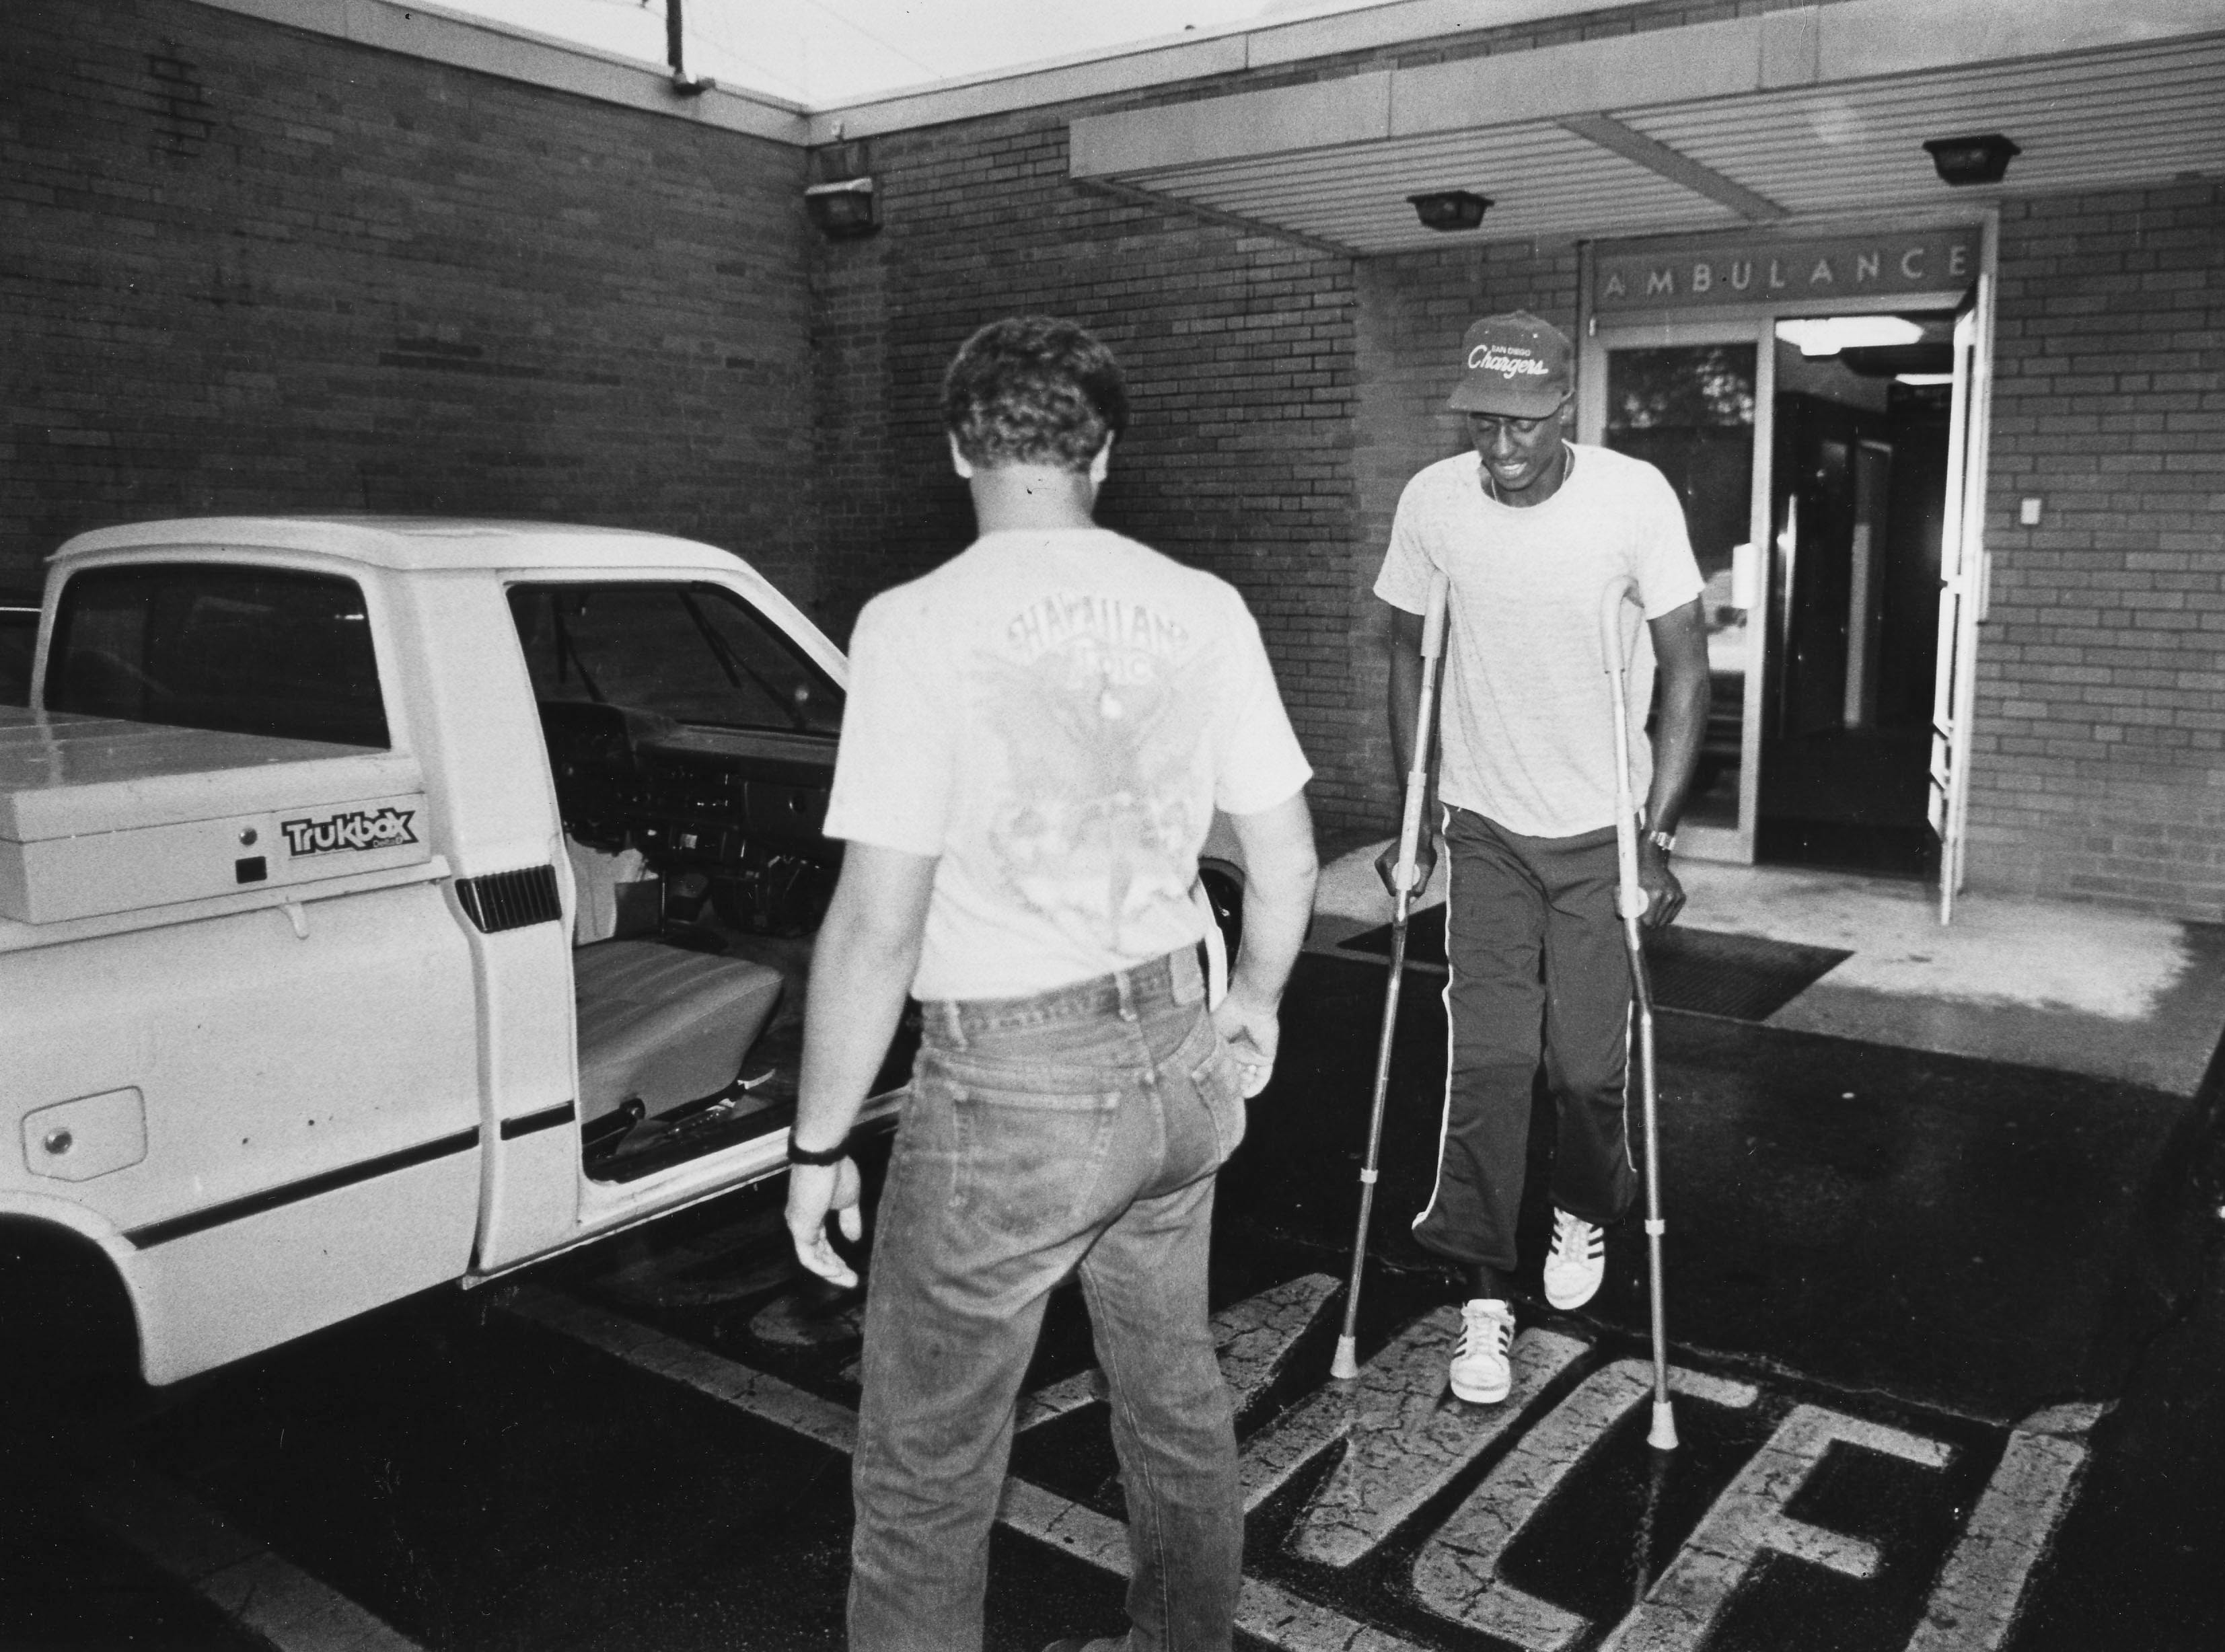 "In an Oct. 21, 1985, photograph, former University of Tennessee quarterback Tony Robinson leaves the Knoxville Orthopedic Clinic after an examination of the knee that was injured two days earlier in the Alabama game. ""I haven't gotten any sleep. All I want to do is go to my room and crash,"" said Robinson to a News-Sentinel reporter."